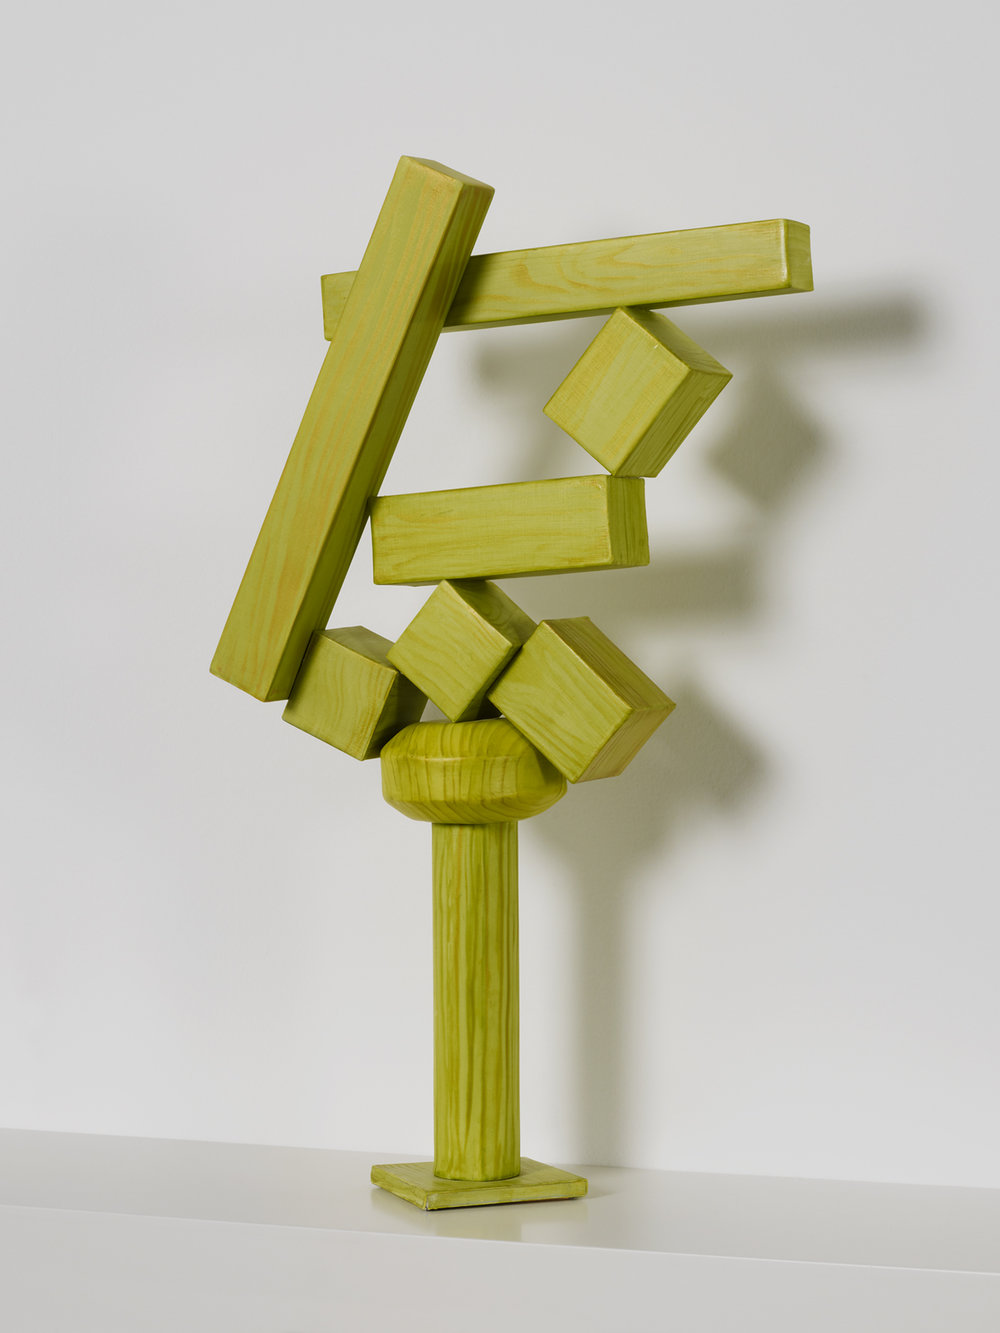 Old enough to repaint but young enough to sell (Cubi XVIII), 2011, paper, acrylic, wooden armature, 18 5/8 x 11 1/2 x 4 1/2 inches